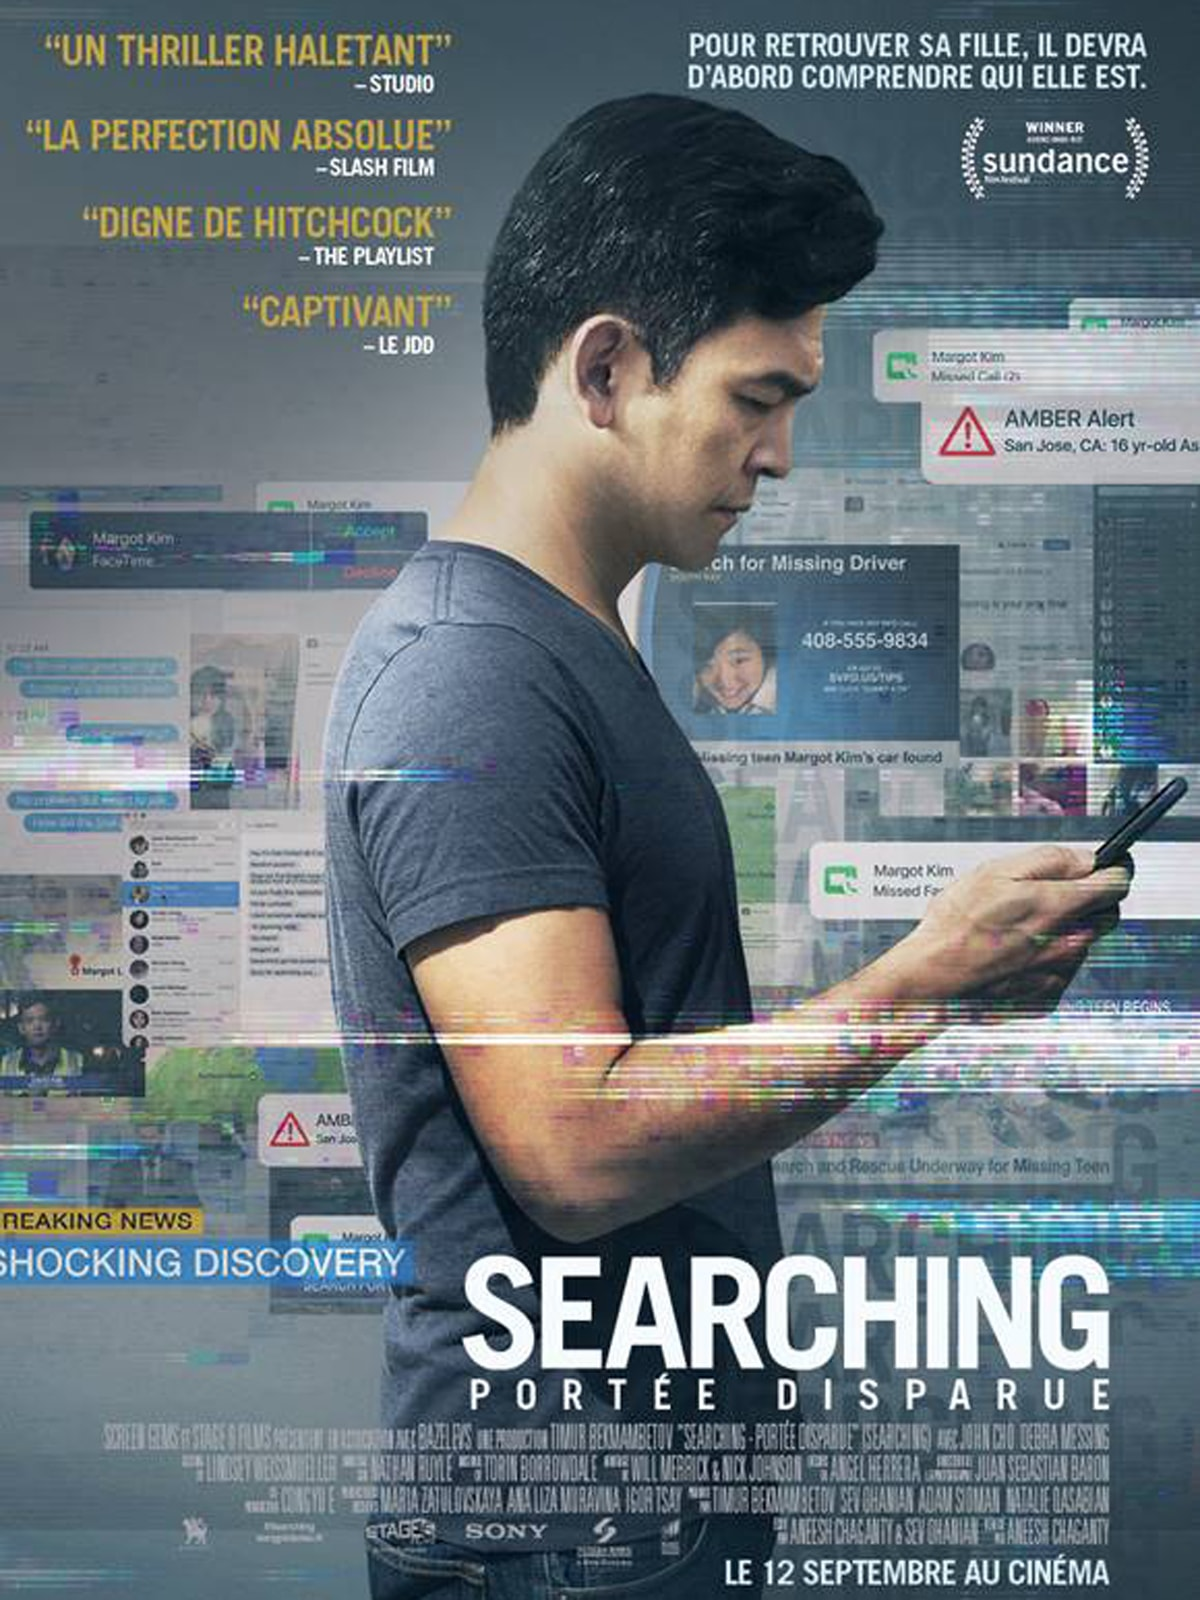 Searching : Portée Disparue film photo critique avis Deauville 2018